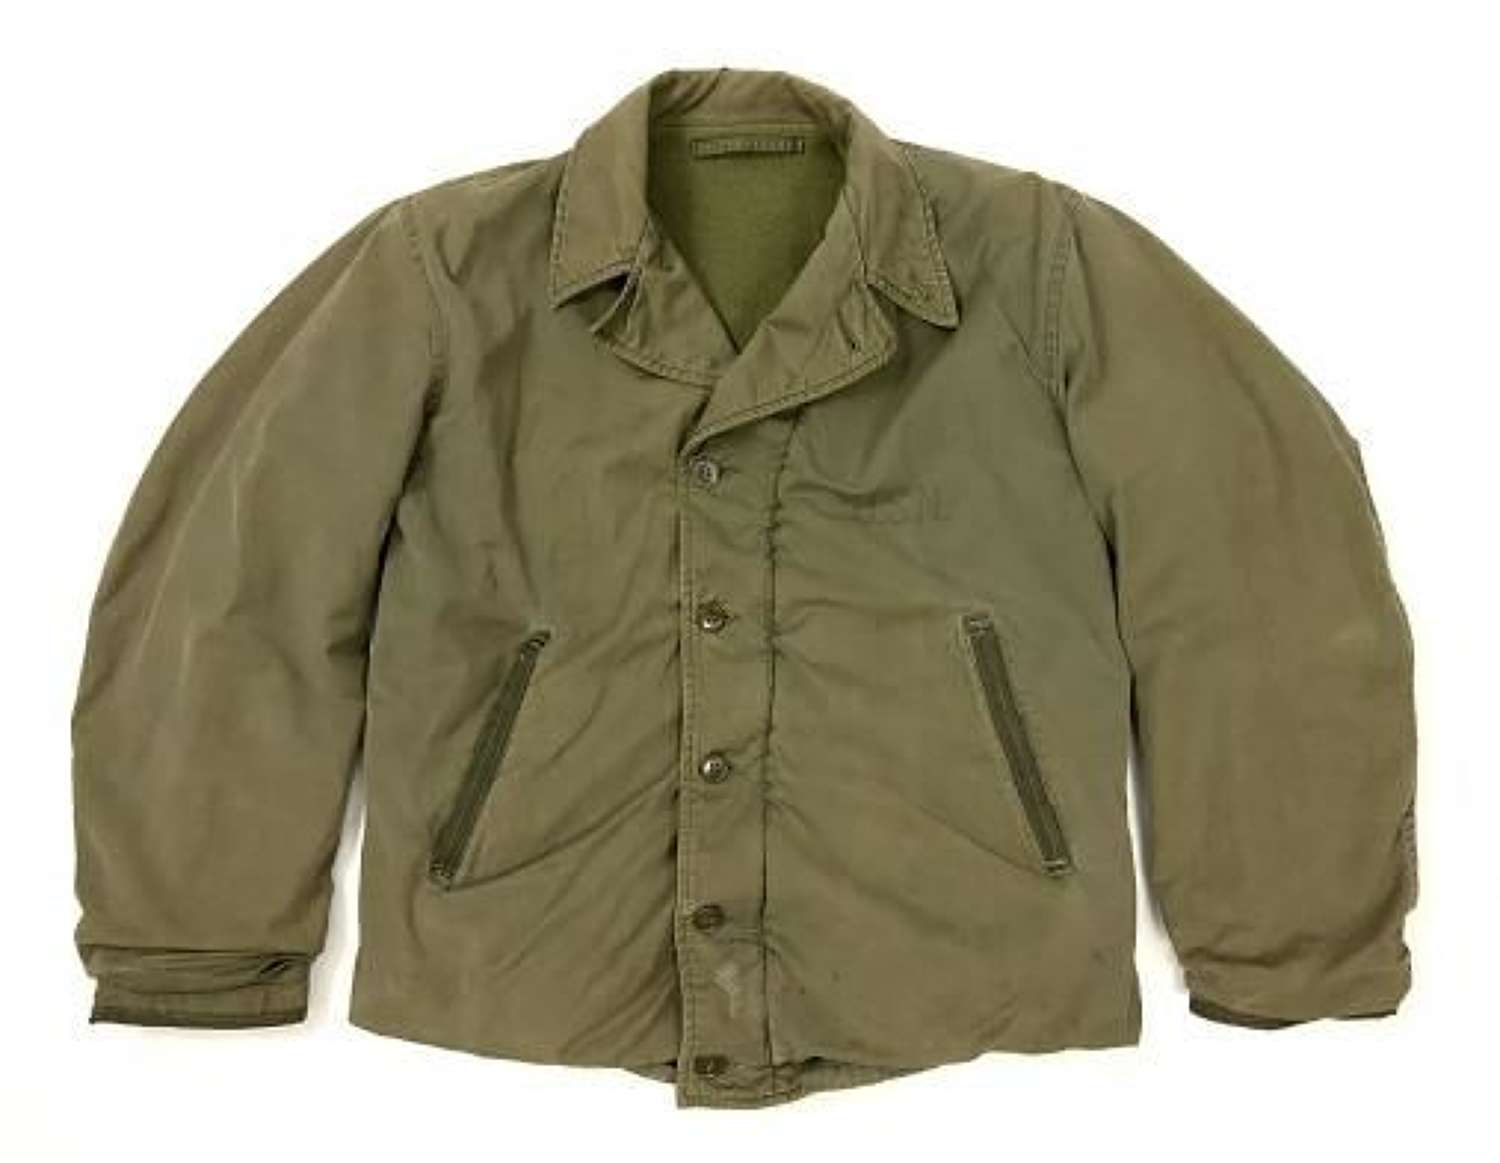 Original 1940s US Navy N-4 Deck Jacket